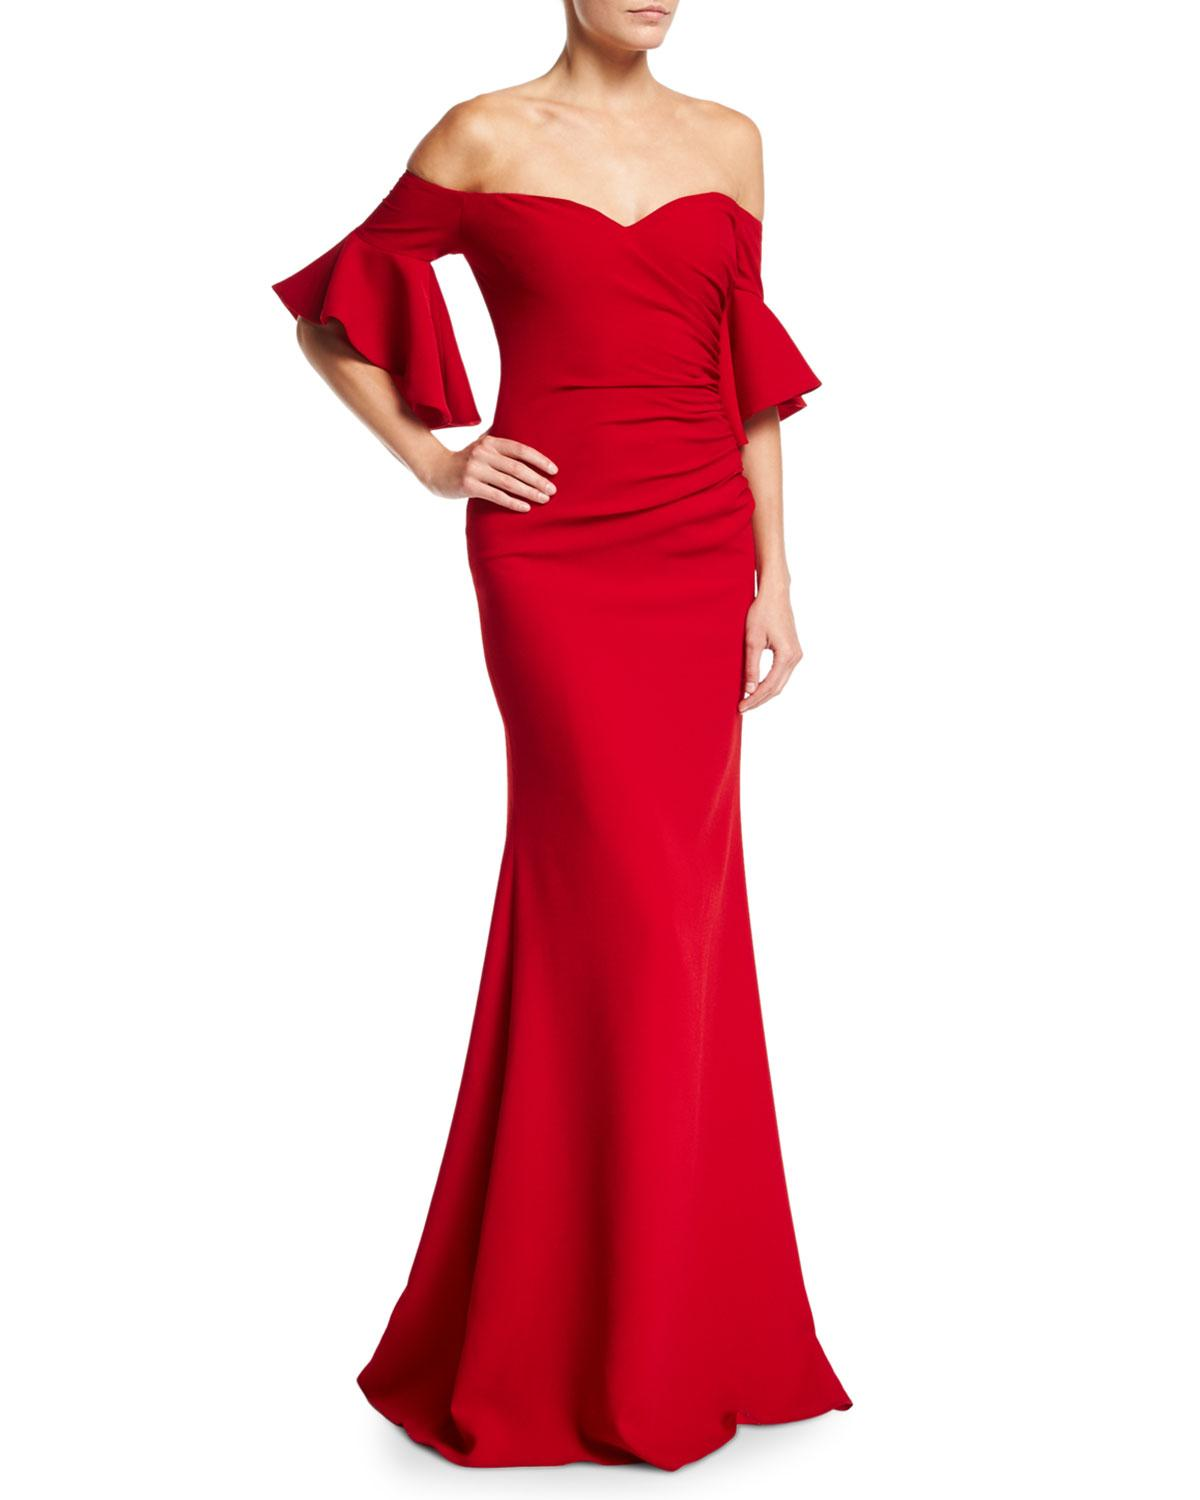 78fd9e4a35cf5 Badgley Mischka. Women's Red Off-the-shoulder Ruched Crepe Evening Gown